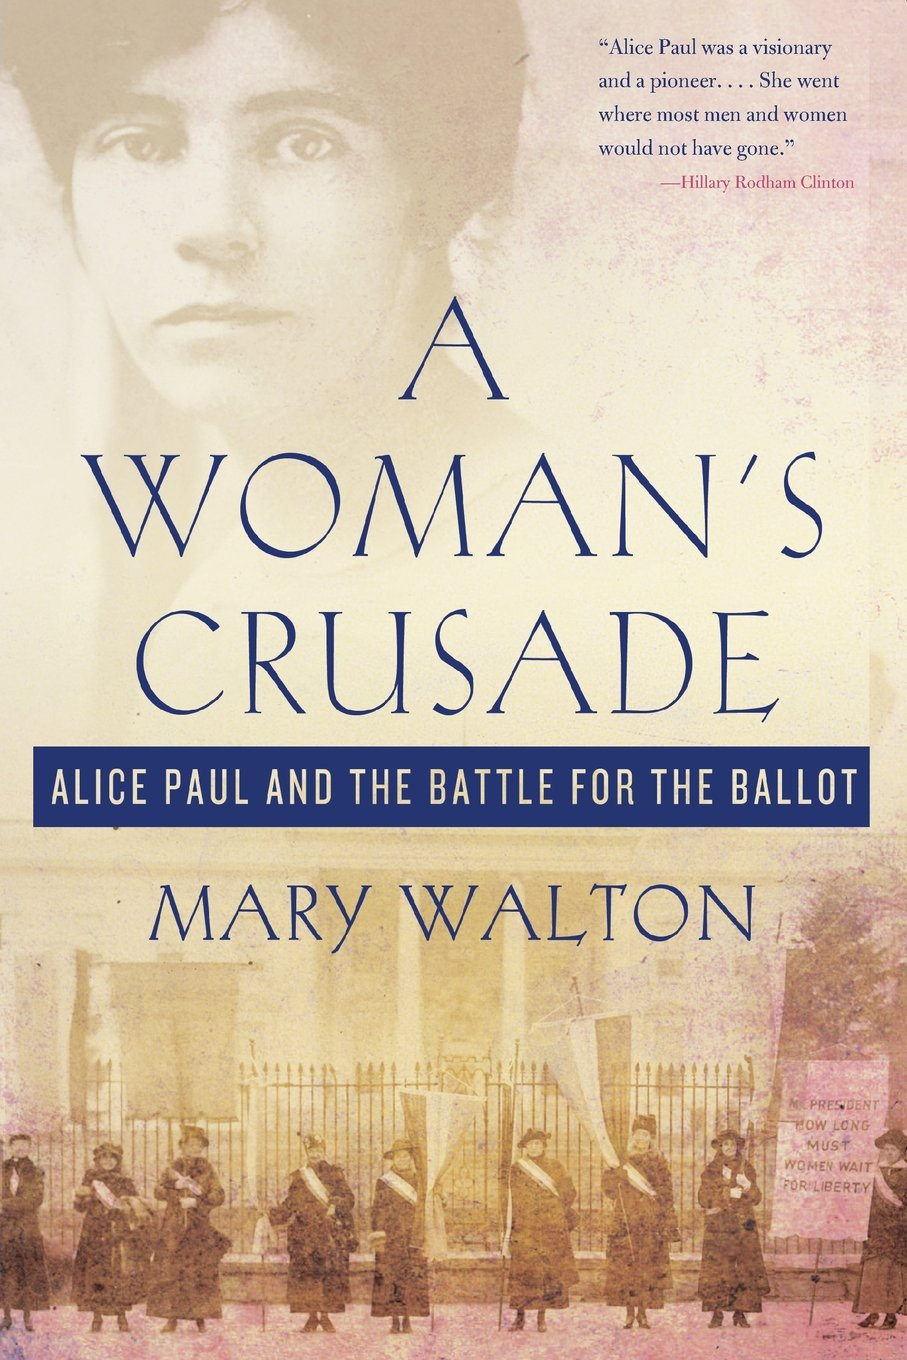 A Woman's Crusade: Alice Paul and the Battle for the Ballot: Mary Walton:  9781250111708: Amazon.com: Books